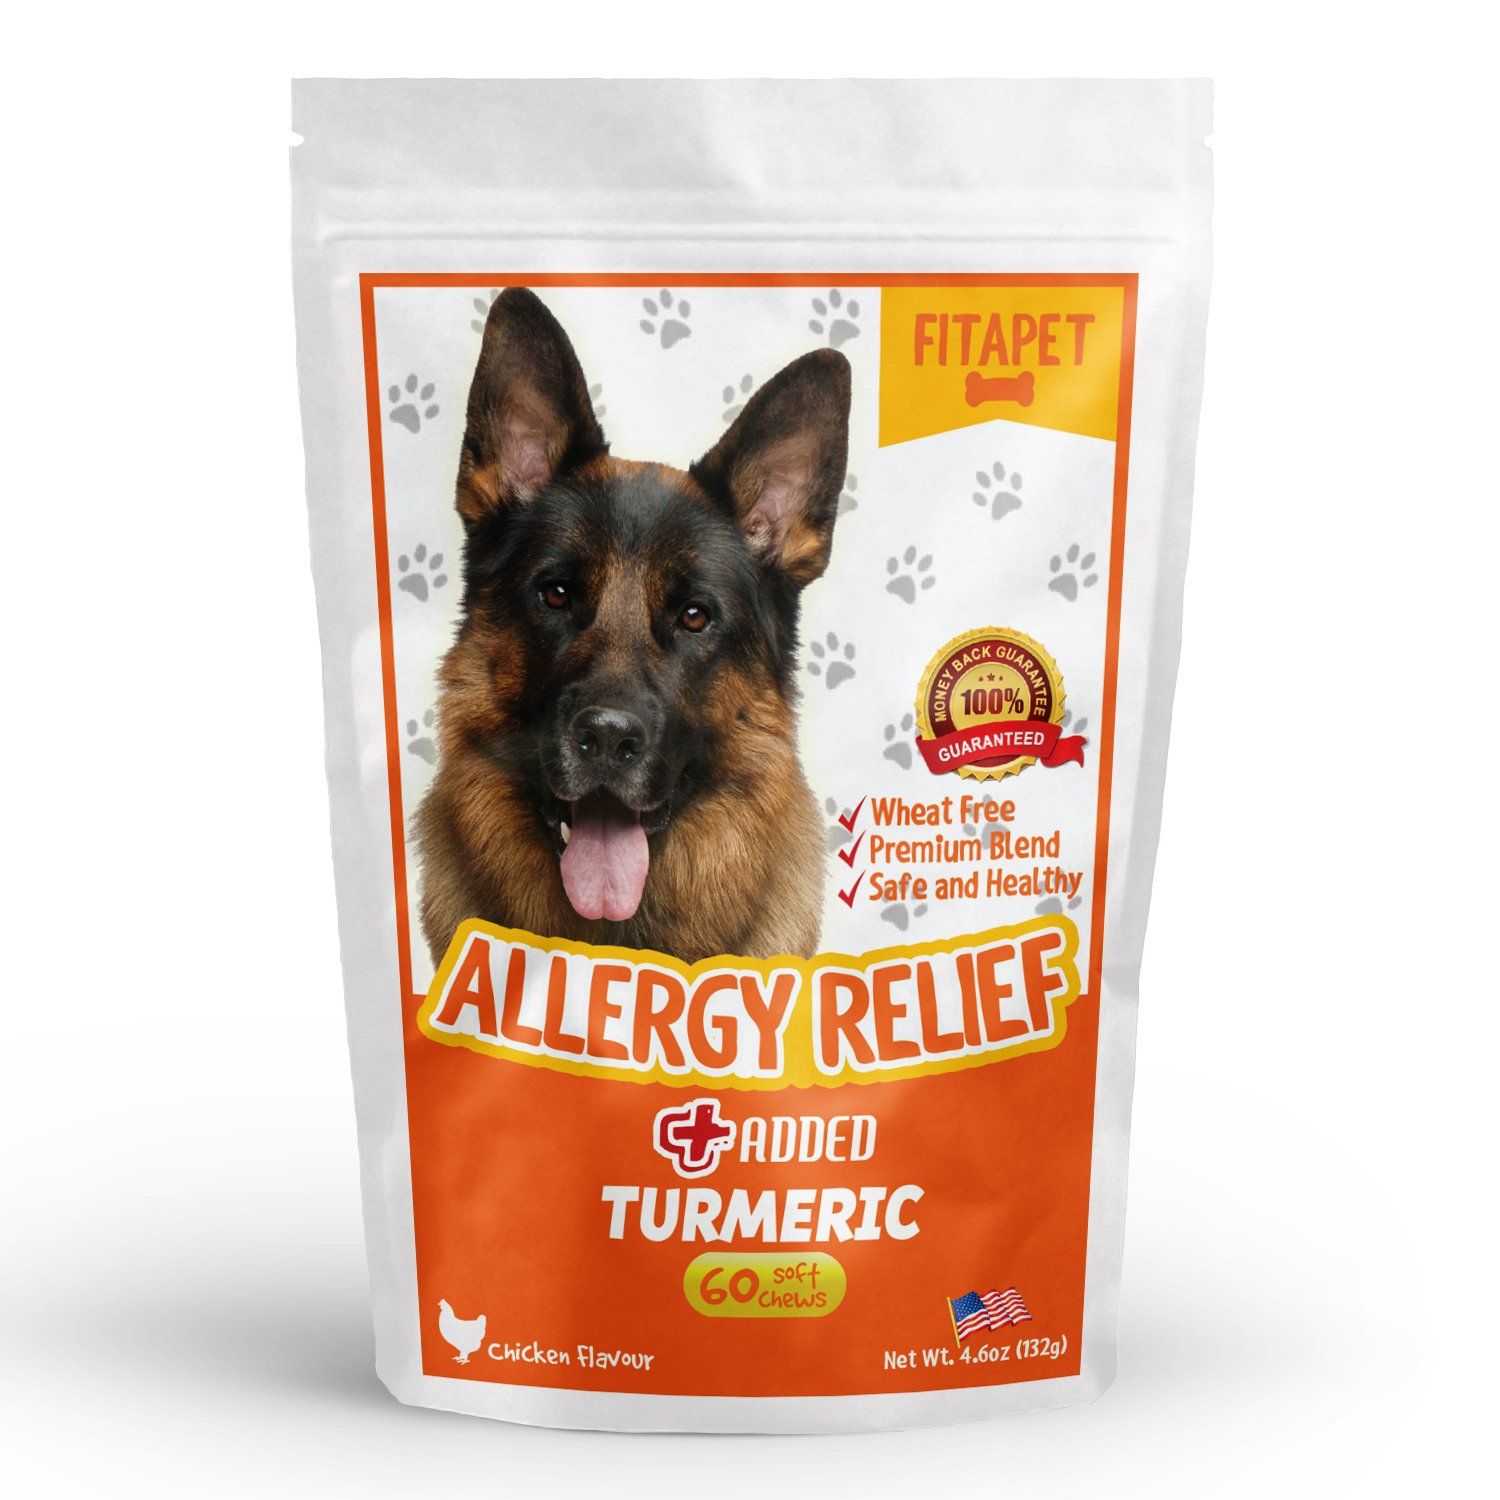 Fitapet Allergy Relief For Itchy Dogs With Turmeric Omega 3